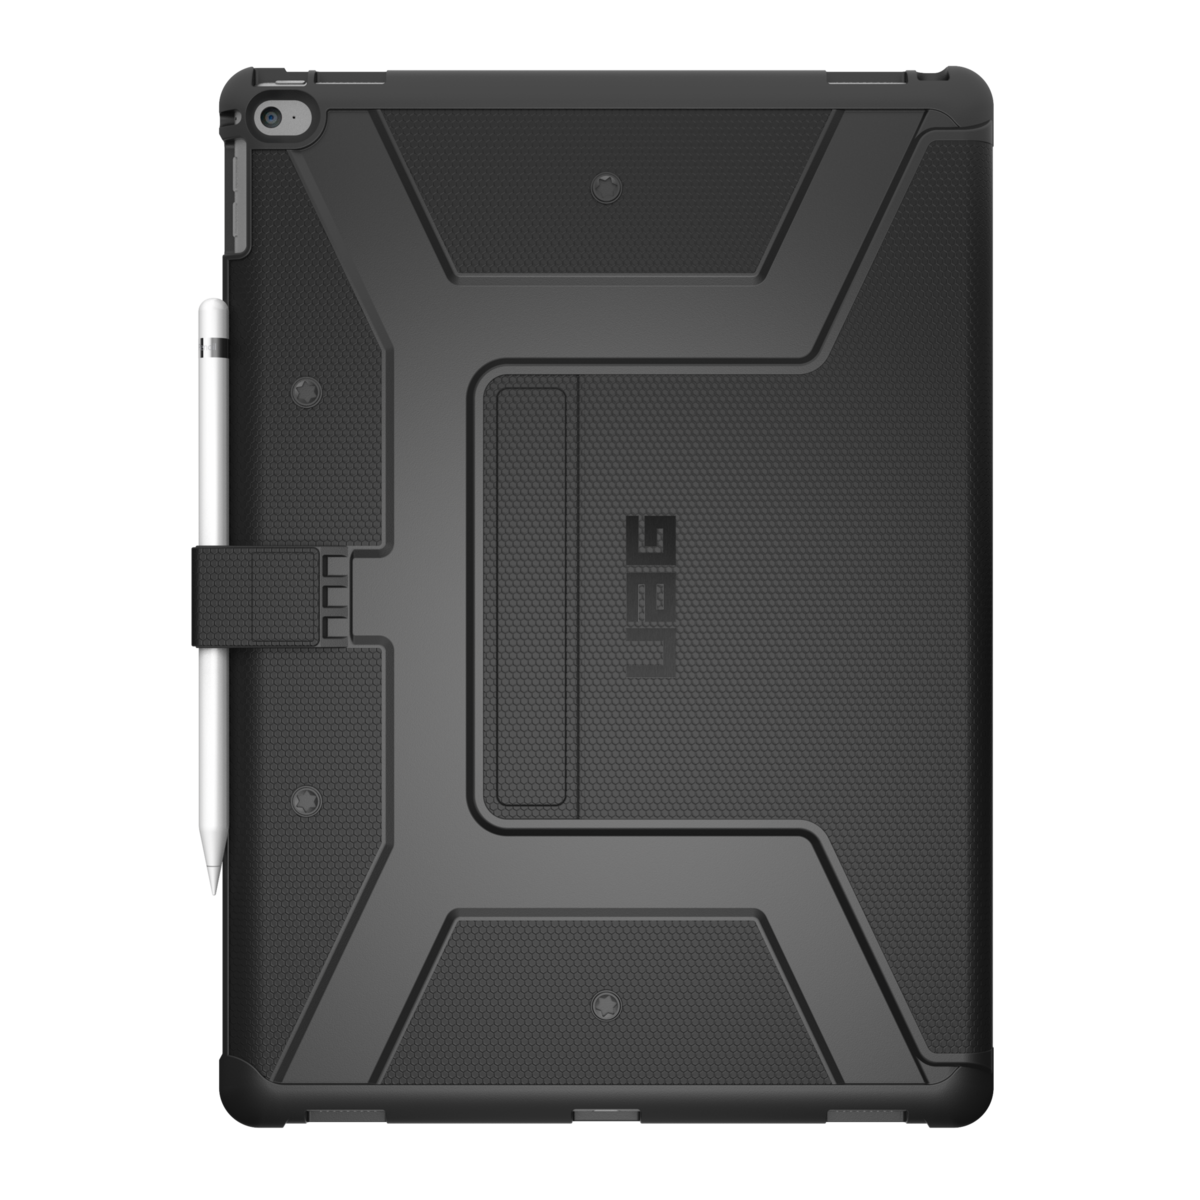 UAG - METROPOLIS CASE FOR IPAD PRO 12.9 - 90% off code MIDNIGHT129 - $4.97 + tax (Original $89.95 USD)